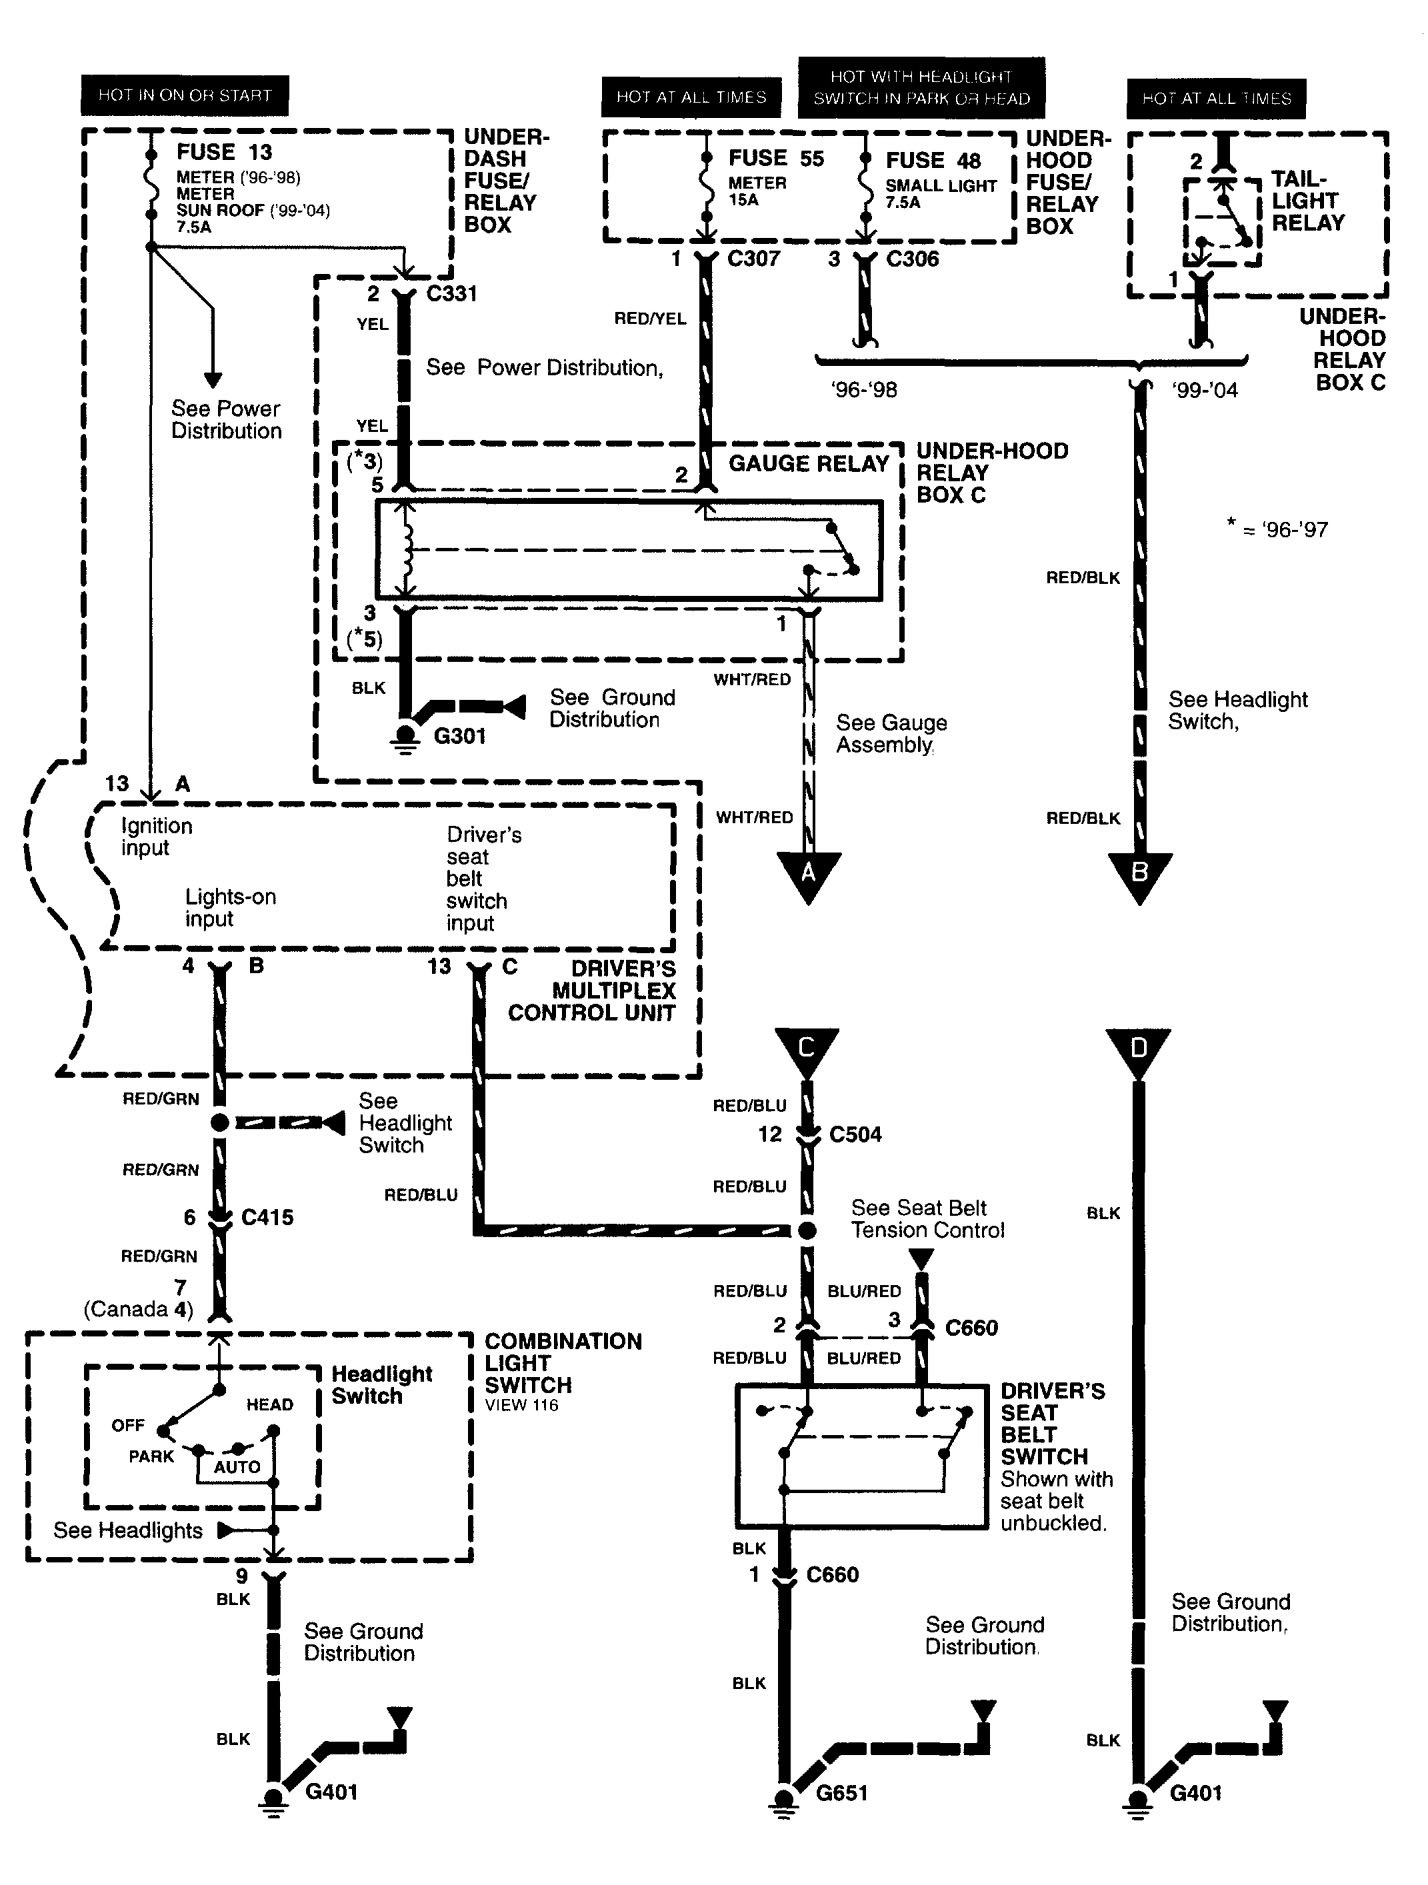 [DIAGRAM] 2000 Acura Rl Radio Wiring Diagram FULL Version